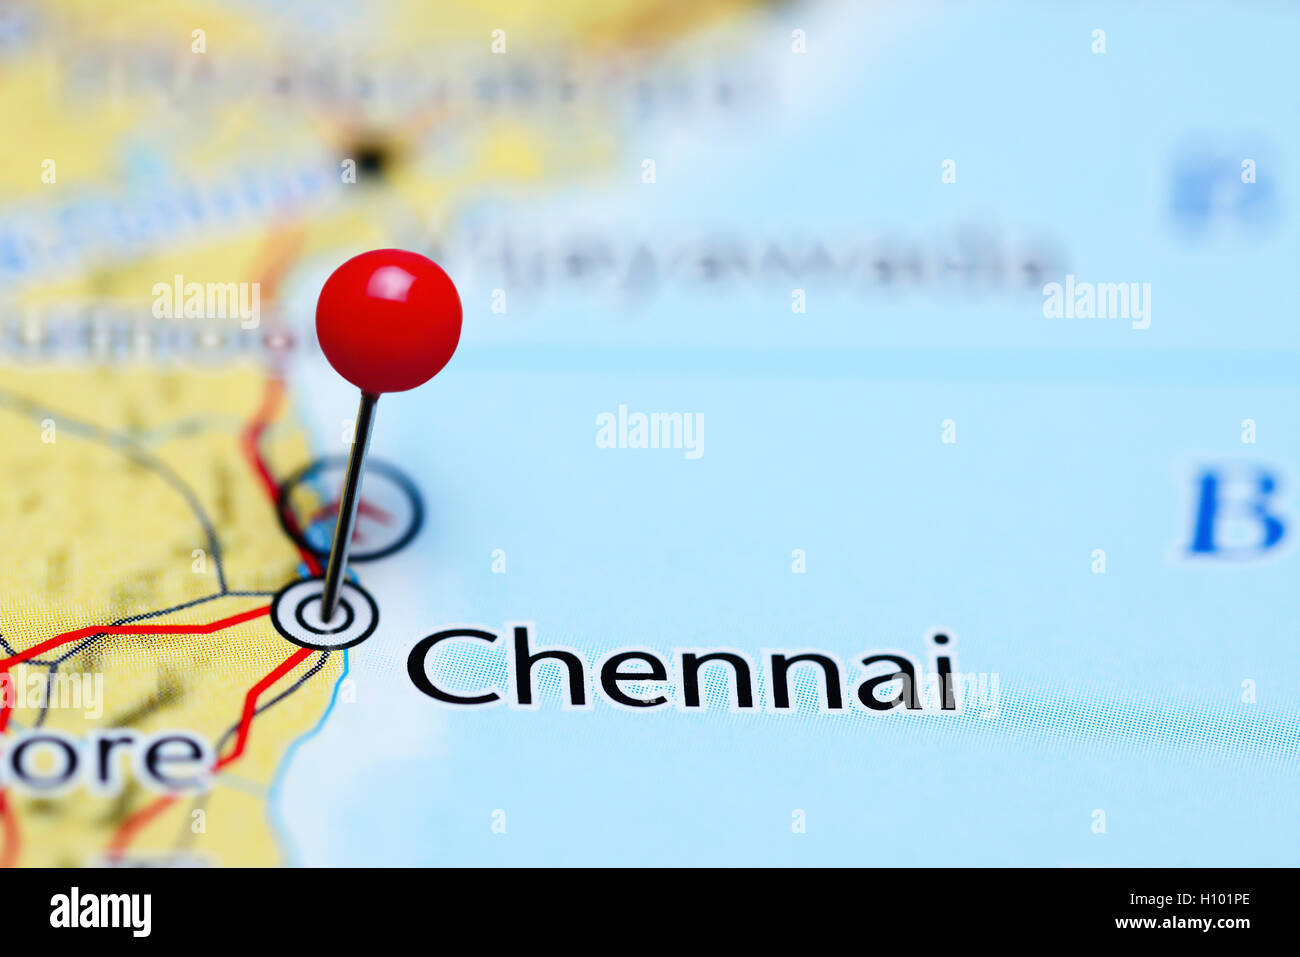 Chennai pinned on a map of India Stock Photo 121088646 Alamy